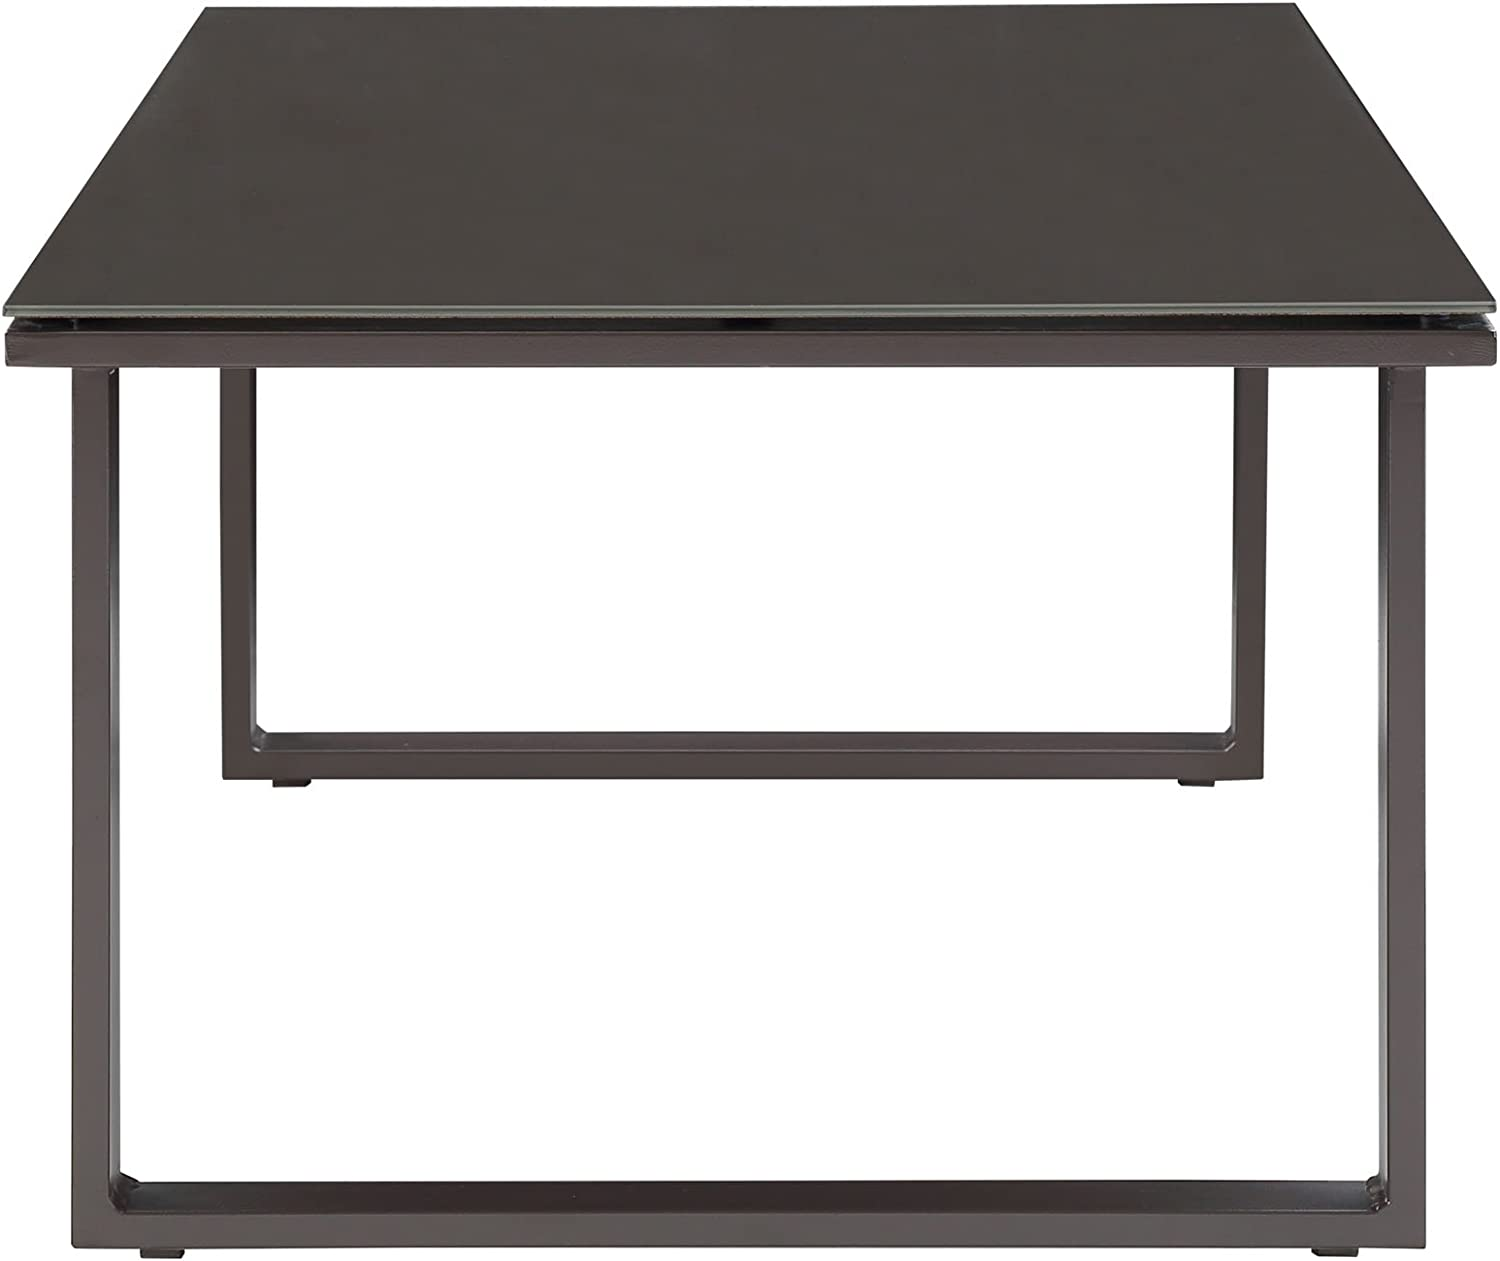 Modway EEI-1516-BRN-SET Fortuna Outdoor Patio Coffee Table in Brown